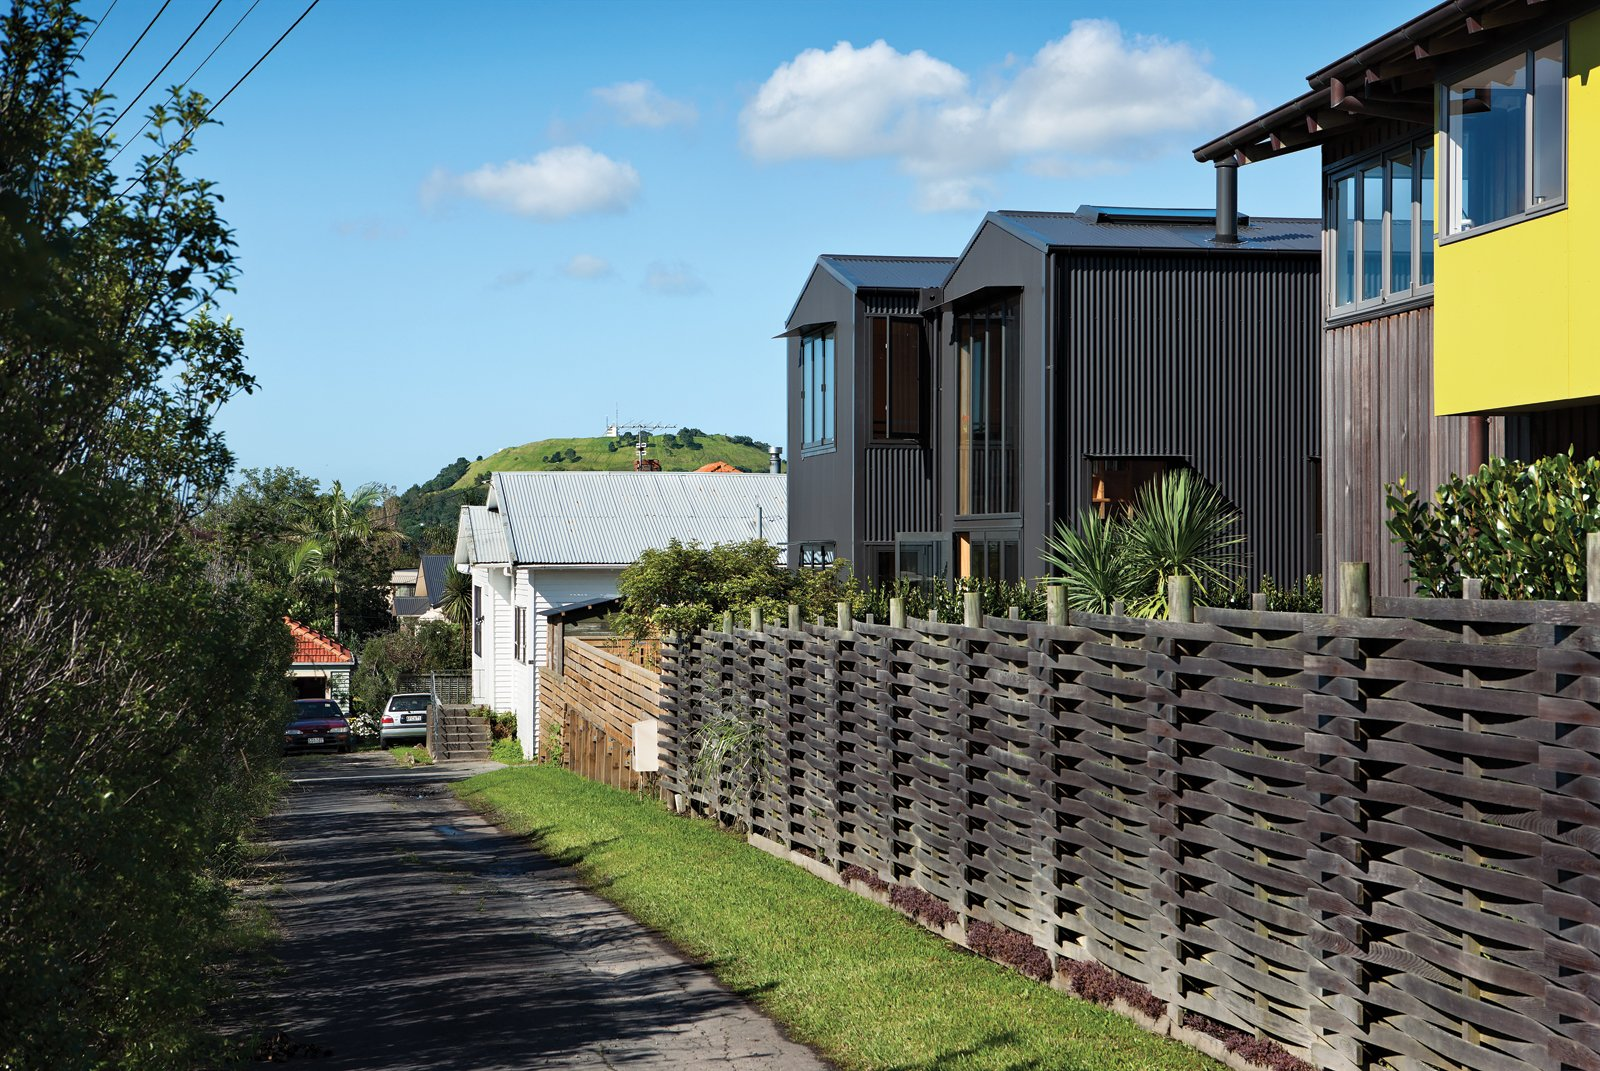 Outdoor, Wood Fences, Wall, and Horizontal Fences, Wall With its pitched roof and verticality, the house blends with the surrounding seaside neighborhood yet remains architecturally distinct thanks to its aluminum cladding.  Material Focus: Corrugated Metal by Diana Budds from Rock the Boat